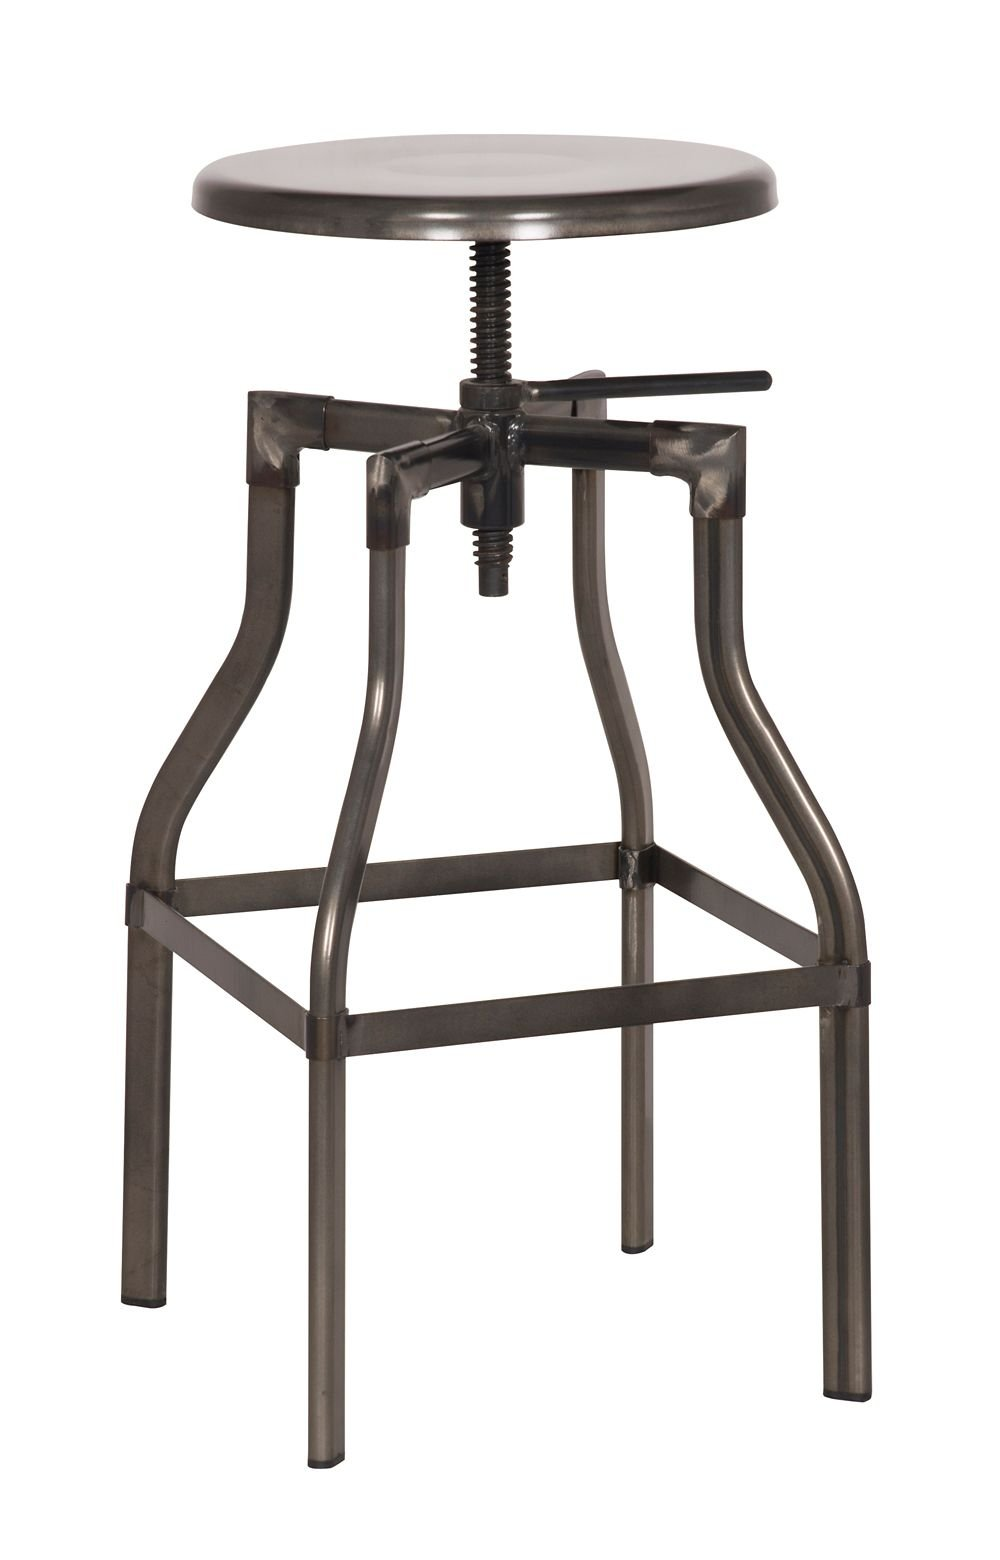 Thomas Adjustable Stool Bronze Dimensions: 18''W x 18''D x 23.5''H Weight: 16 lbs by Moes Home Collection